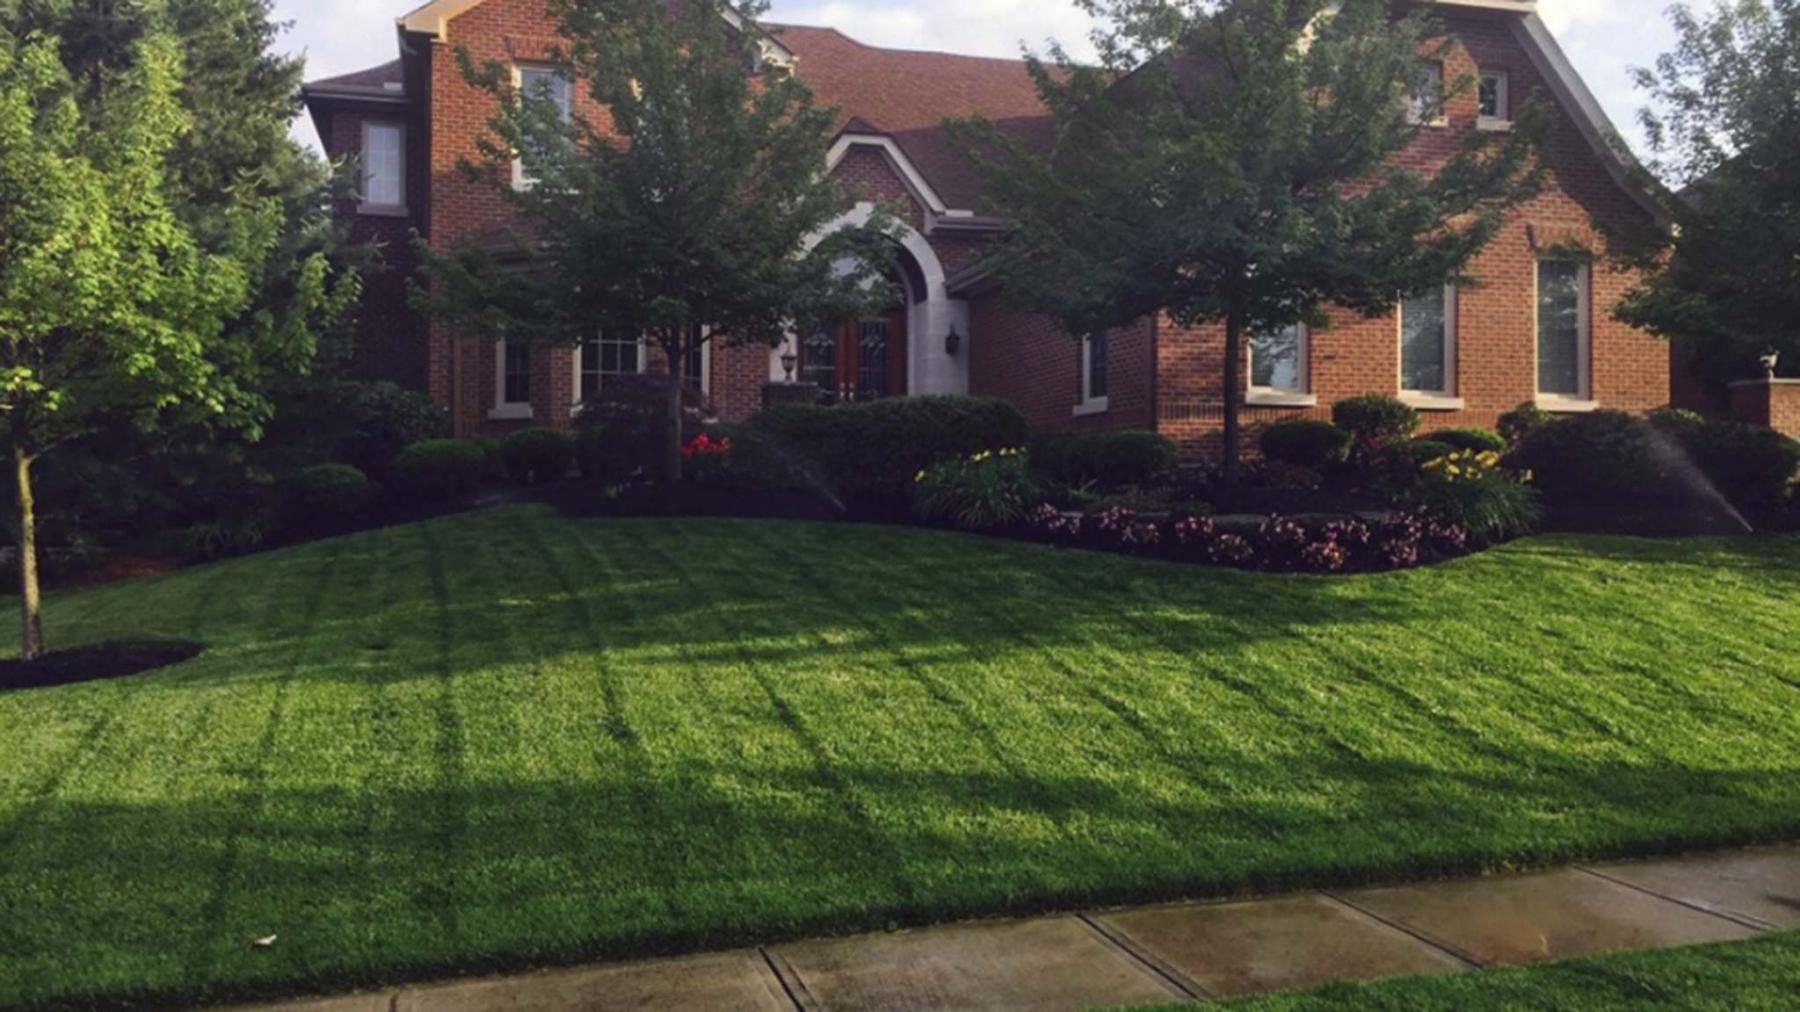 <p>TNS</p><p>A lush green lawn is possible, if you properly mow, fertilize and weed throughout the season.</p>